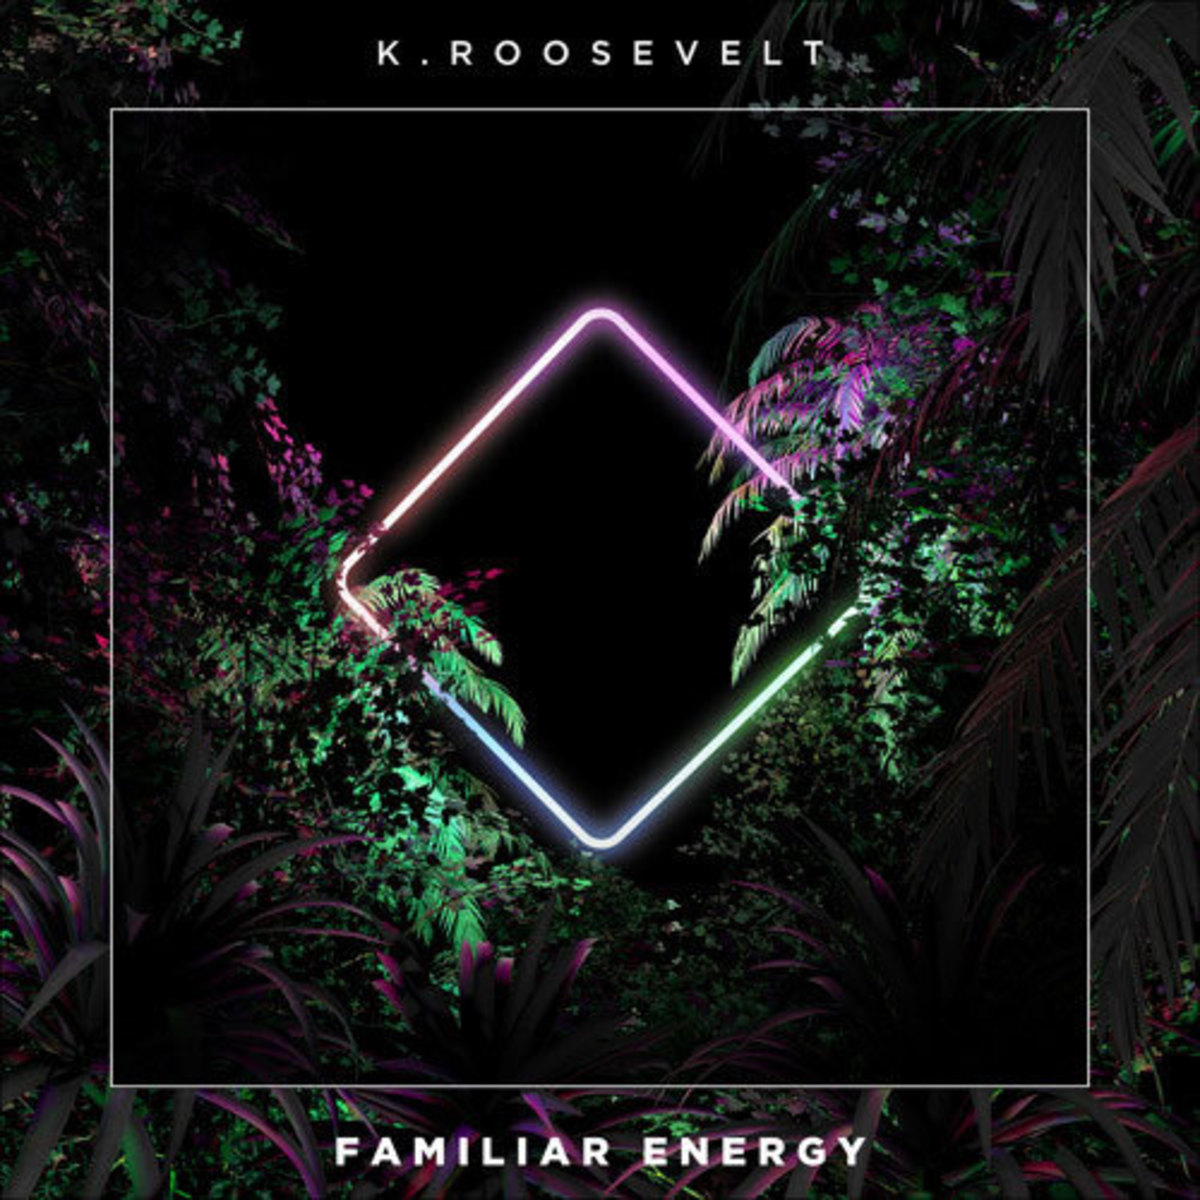 k-roosevelt-familiar-energy.jpg